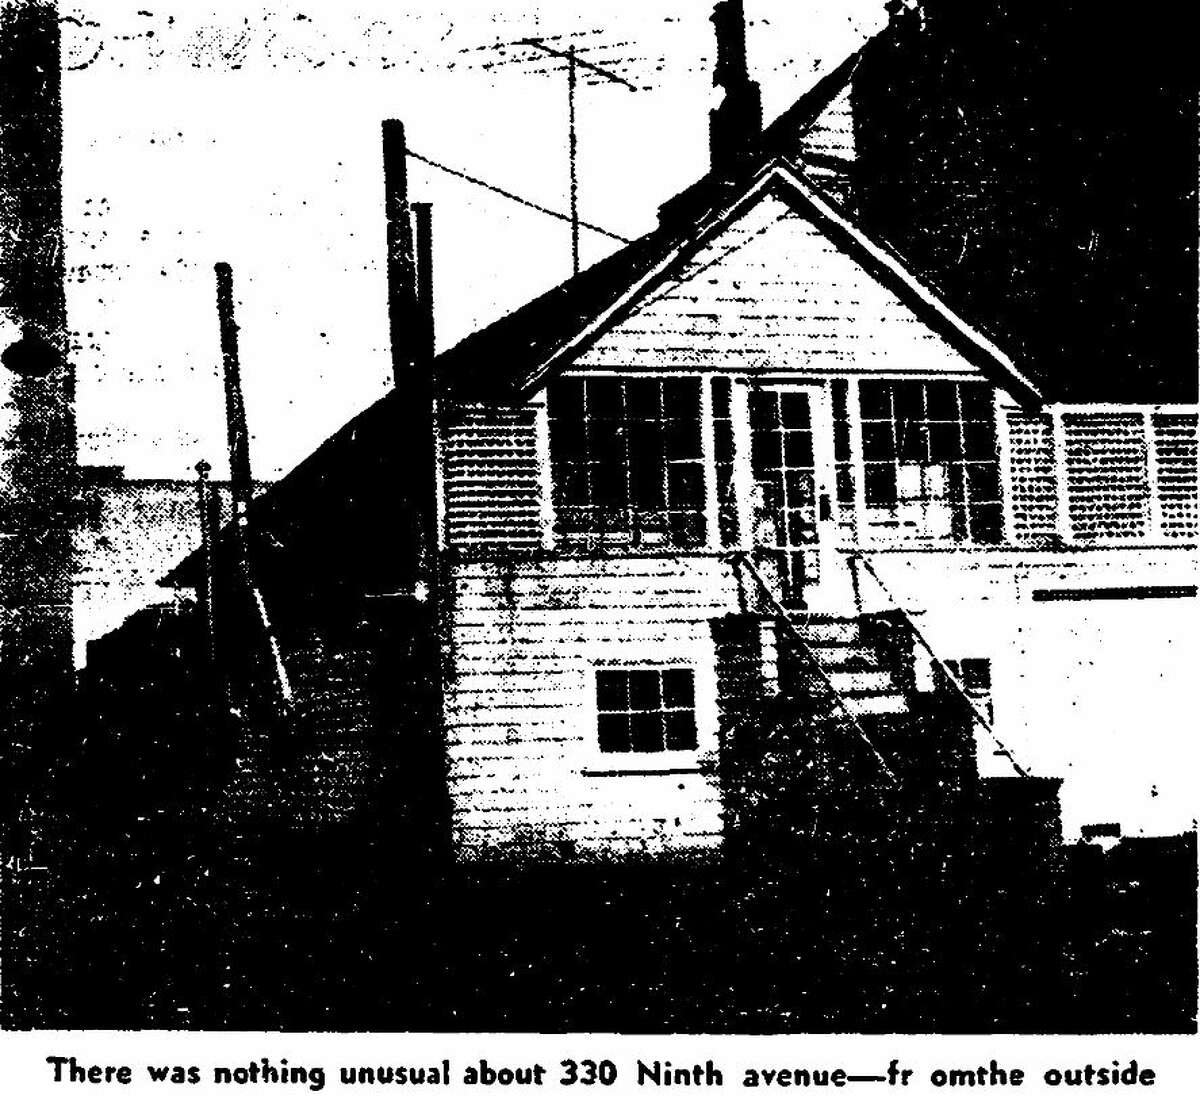 """The house that used to sit at 330 Ninth Avenue in San Francisco's Richmond District used to be made out of old horse drawn streetcars, including """"Old 69."""" After the owners died, the city condemned the property and cleared it for Clement Street shoppers parking lot."""